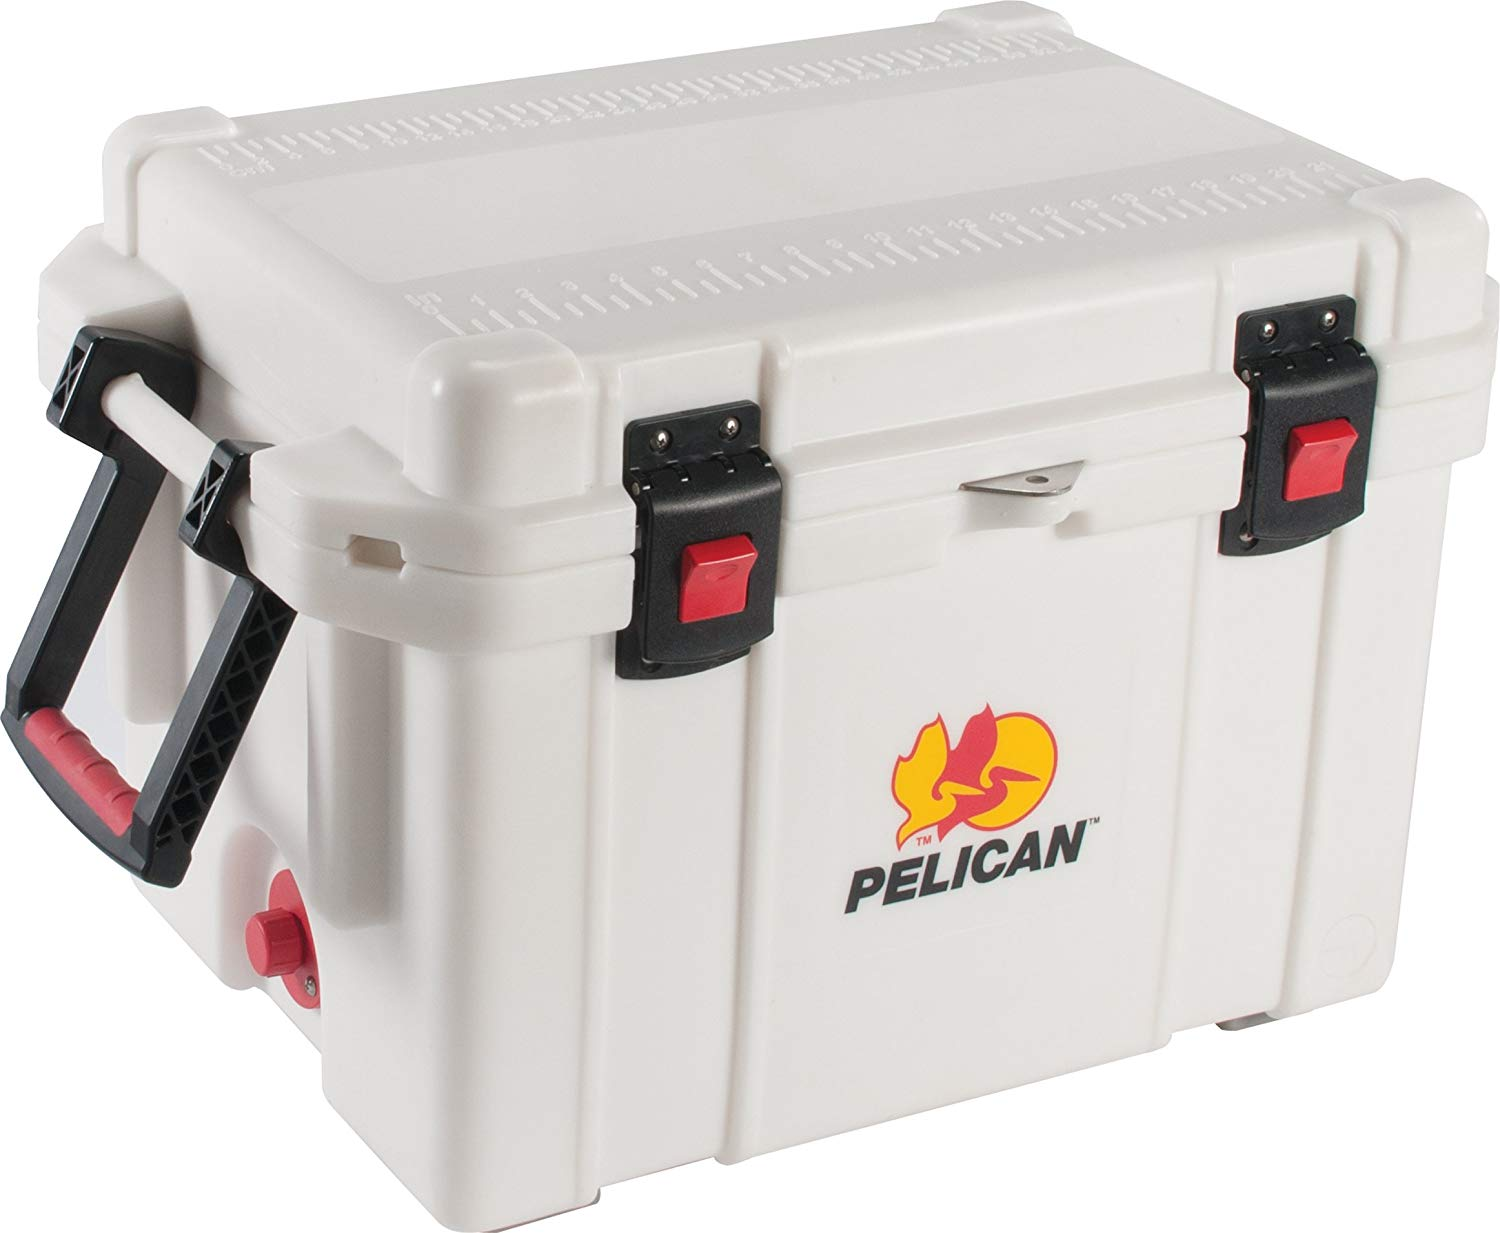 Pelican Elite Marine Cooler 35 Quart , White